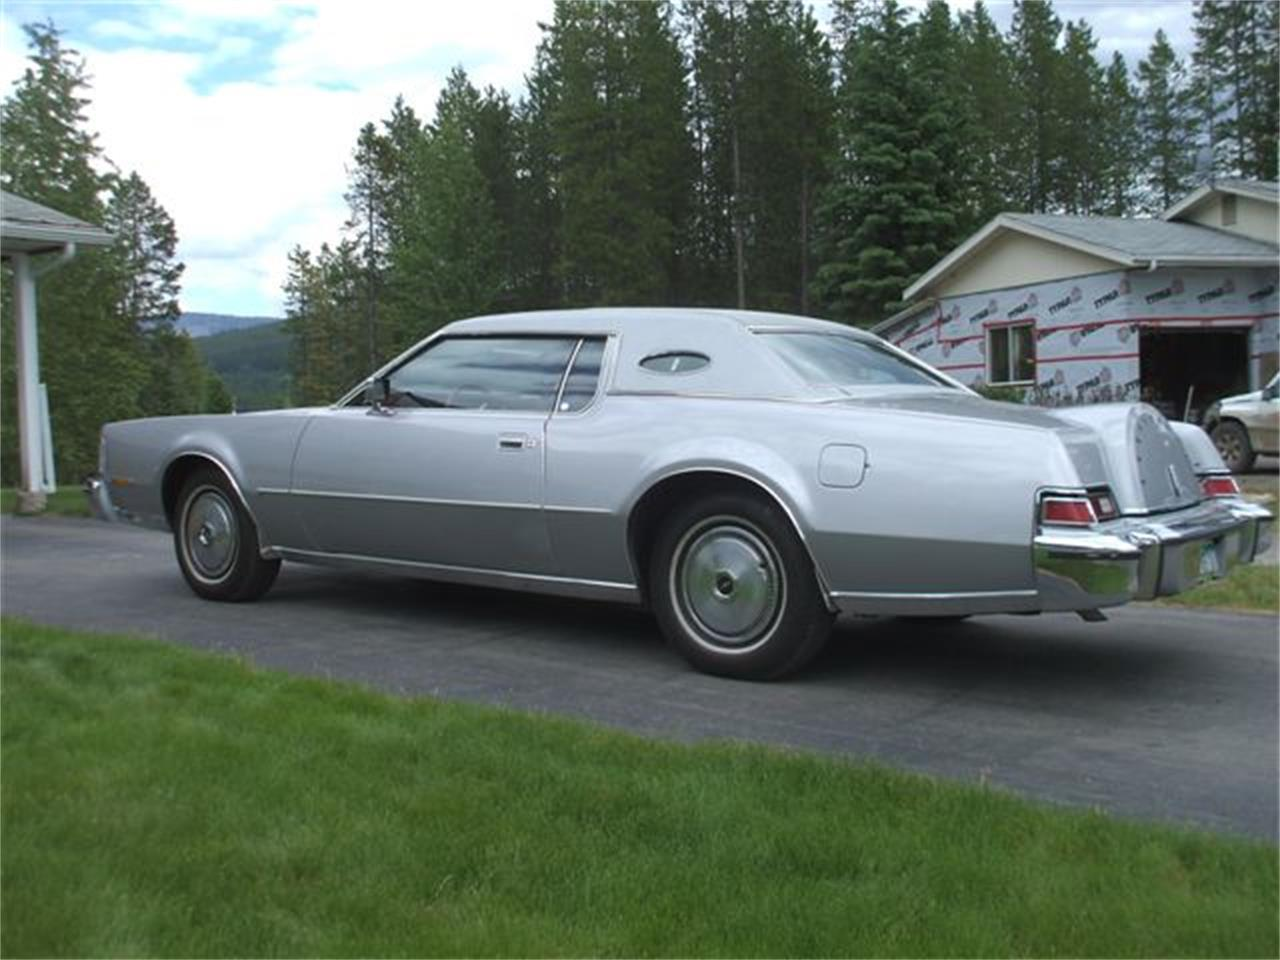 Large Picture of '74 Lincoln Continental Mark IV - $7,600.00 - E23Q